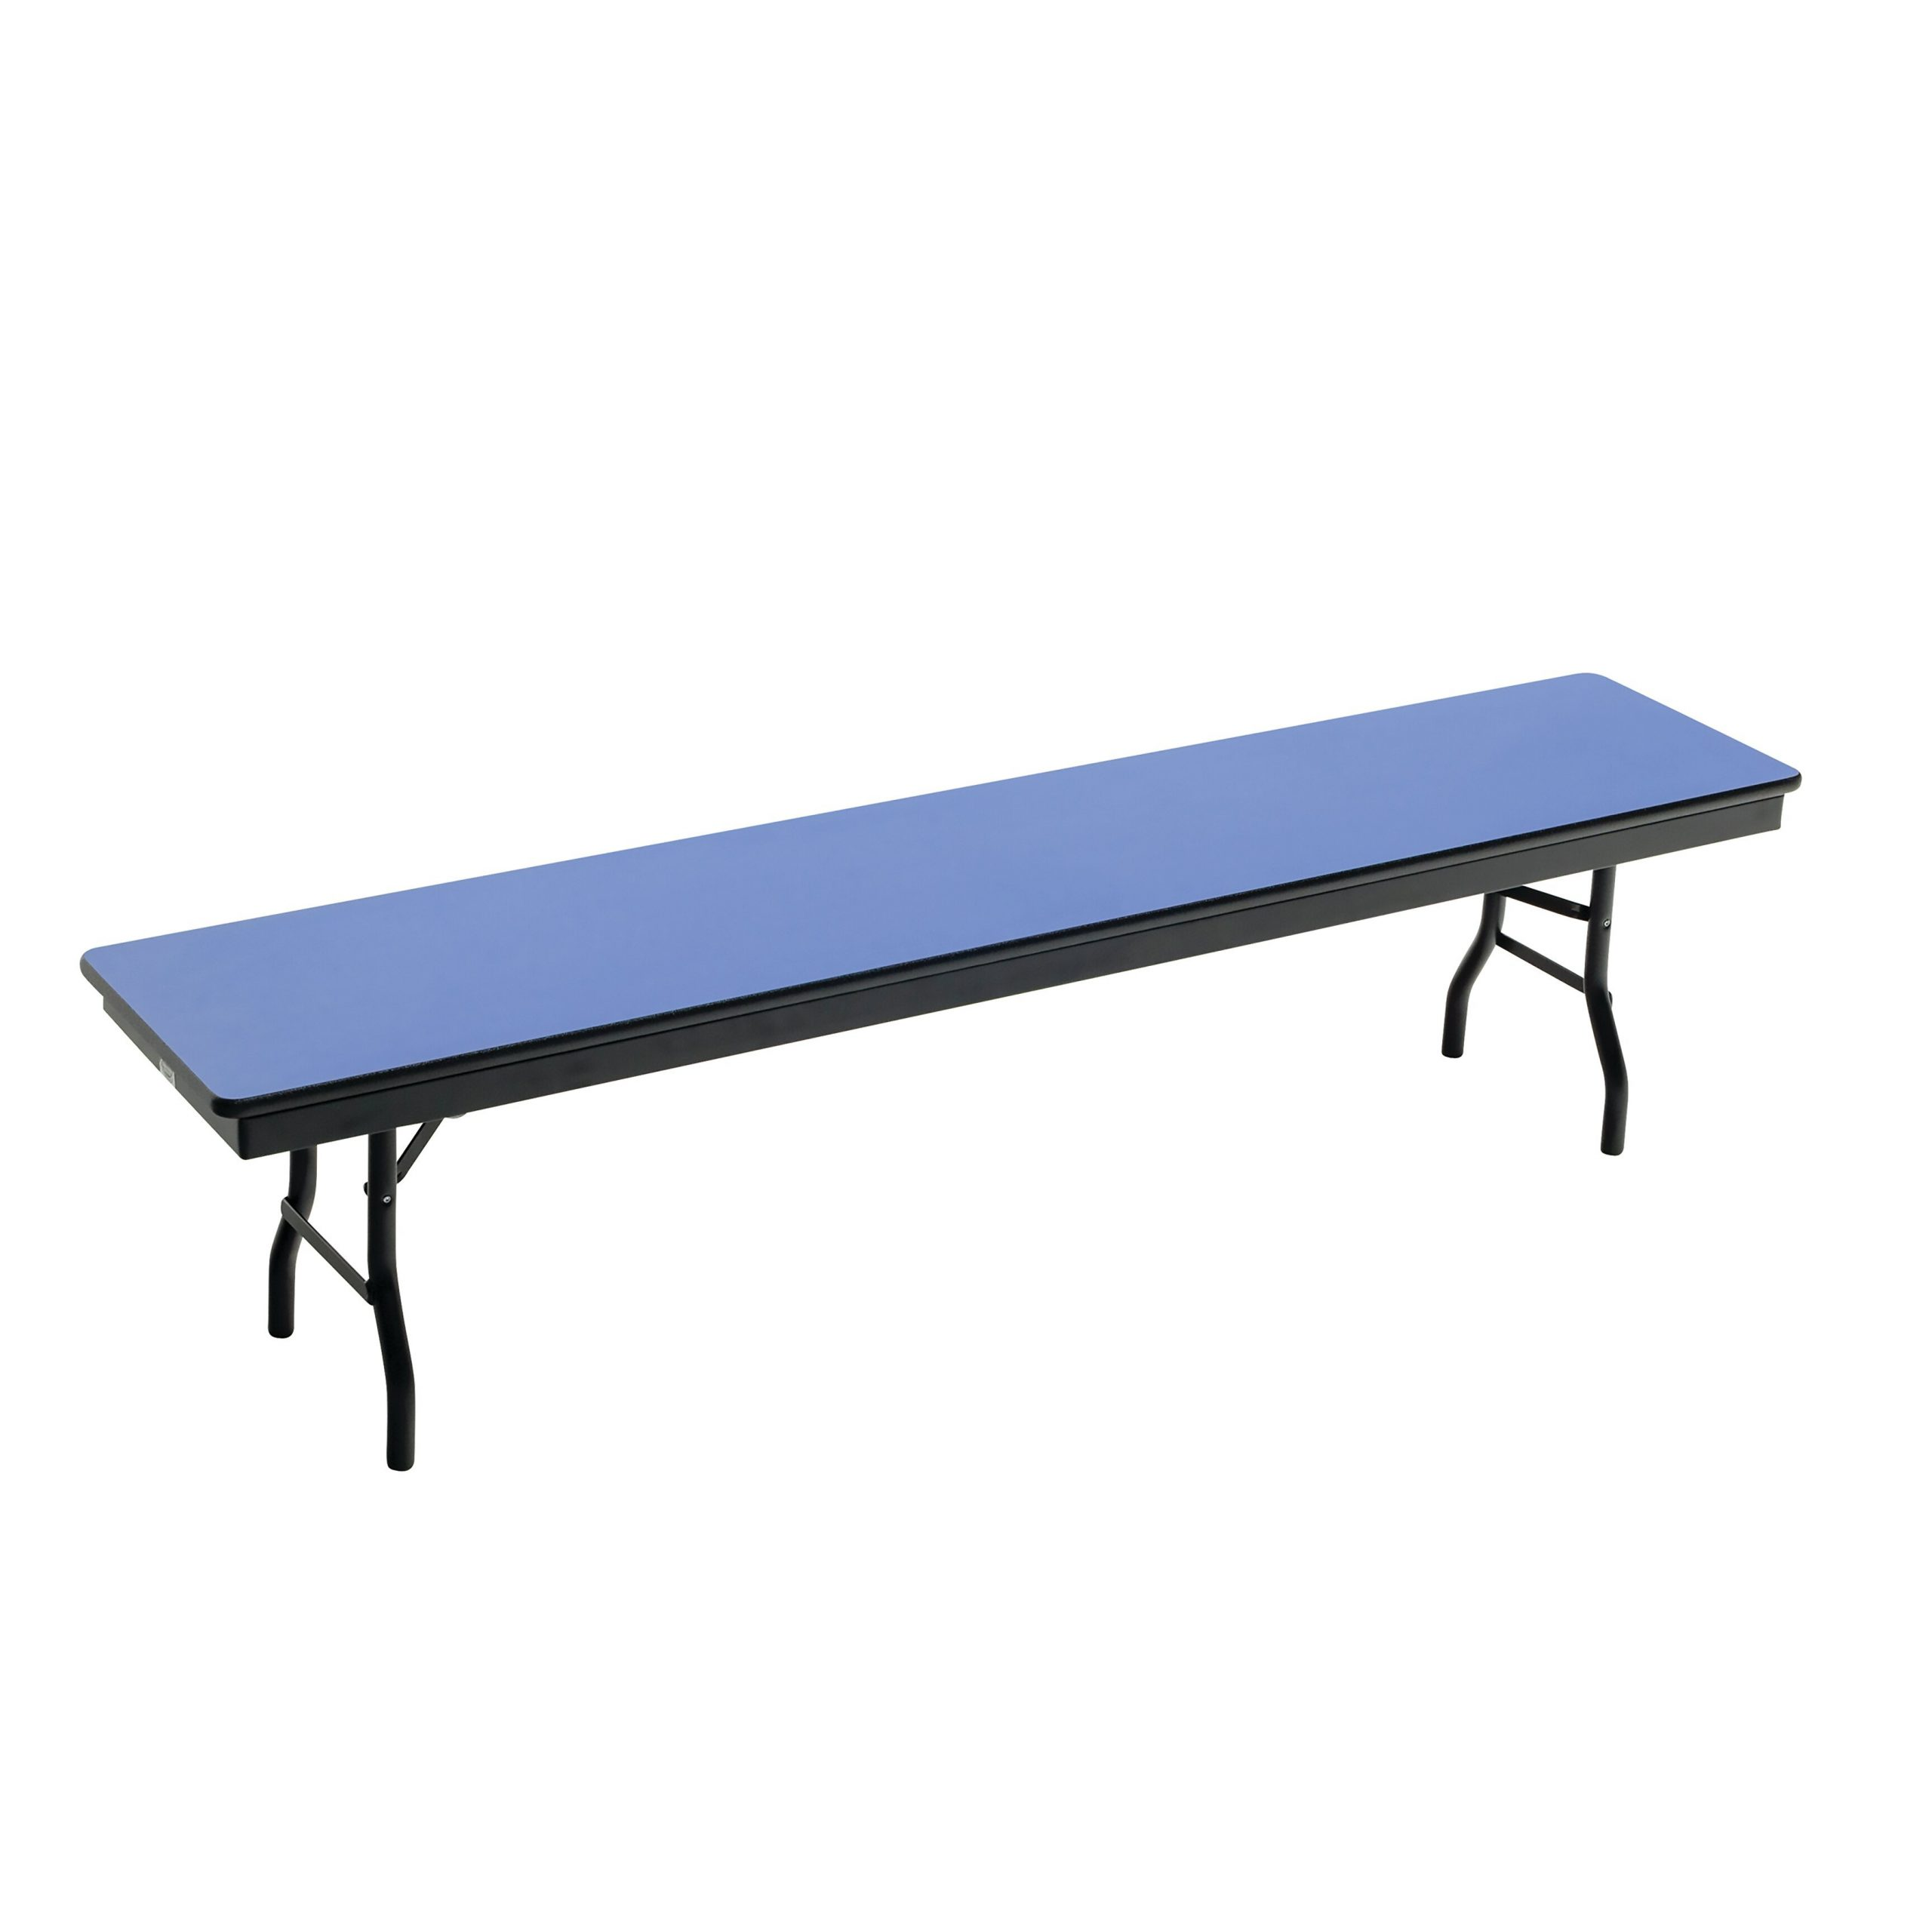 High Pressure Laminate Picnic Bench With Ossu Iron Picnic Benches (View 11 of 25)